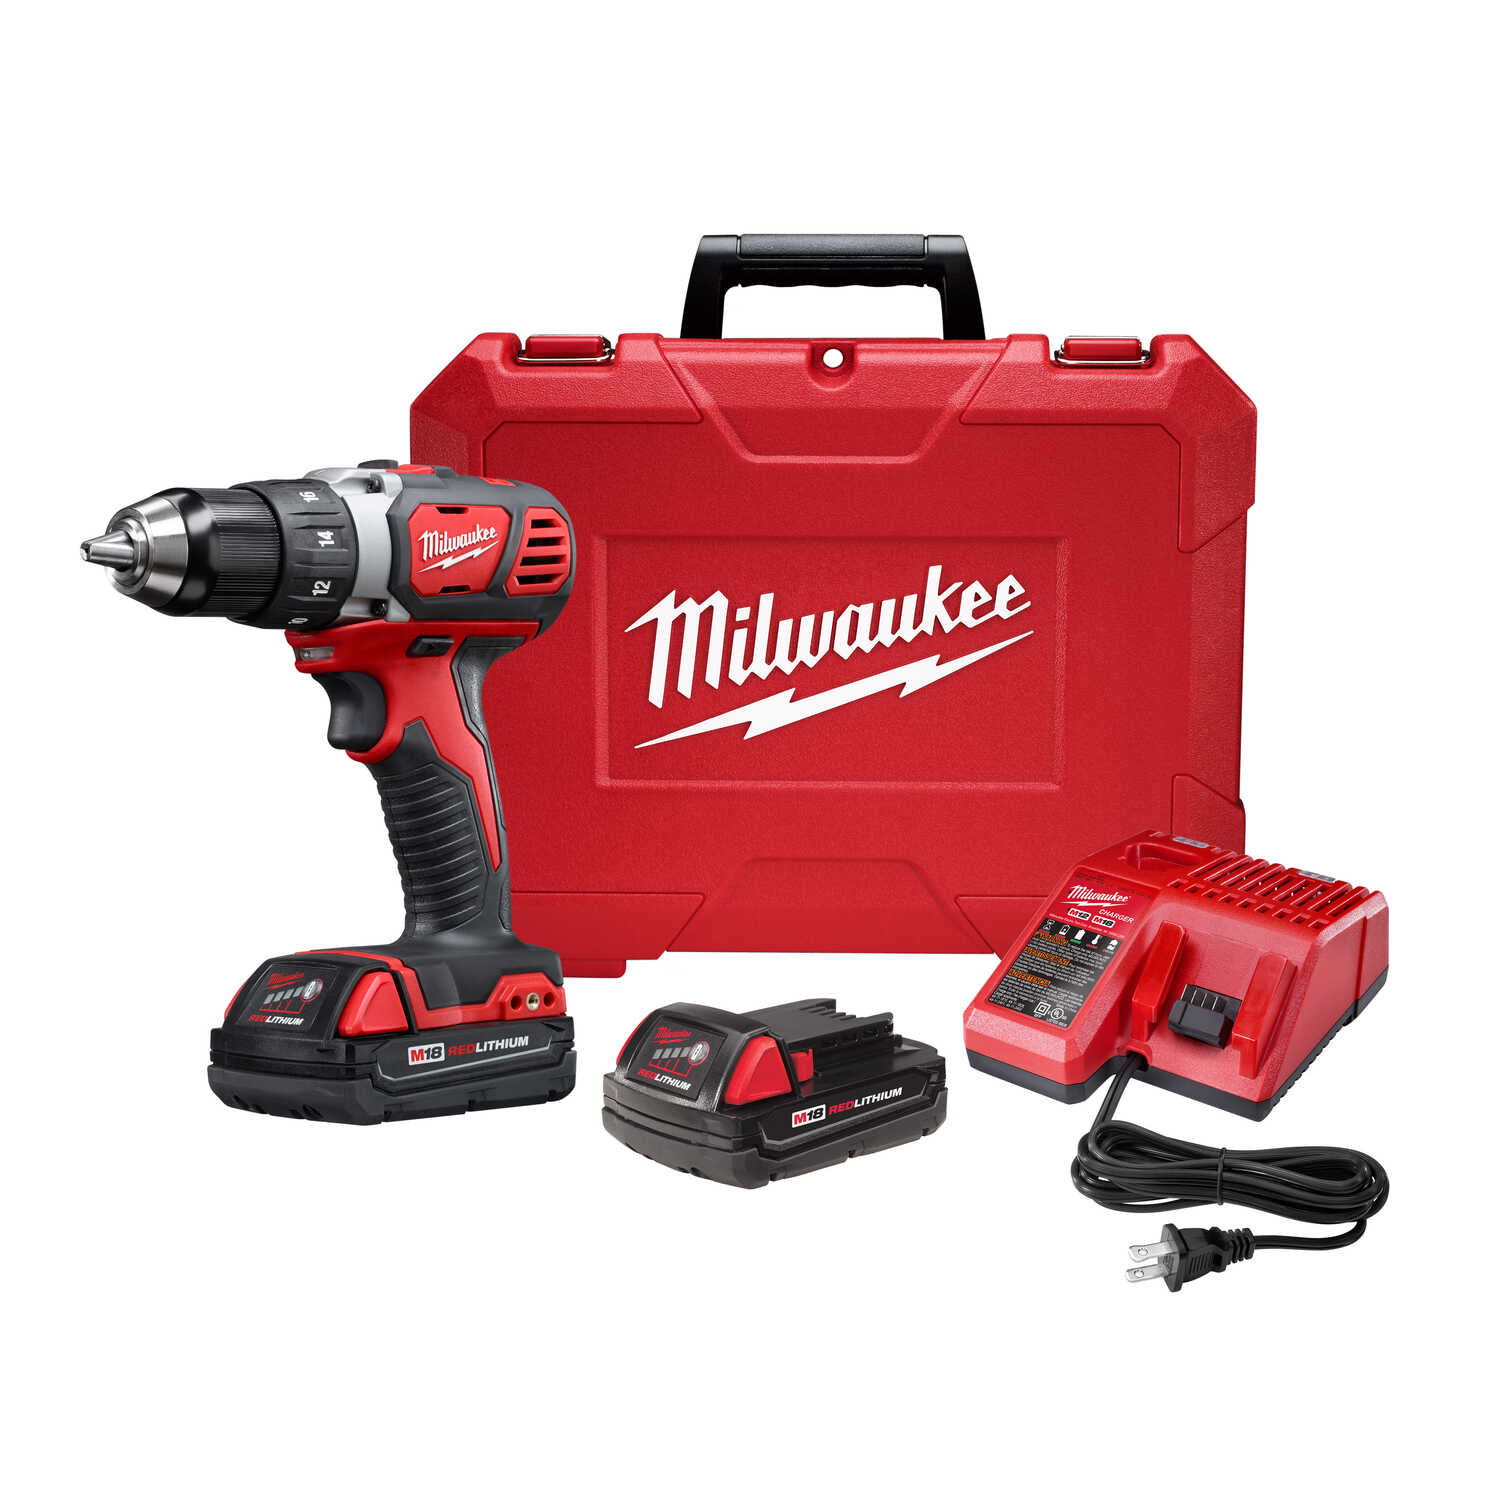 Milwaukee  M18  18 volt Brushed  Cordless Compact Drill/Driver  Kit  1/2 in. Ratcheting  1800 rpm